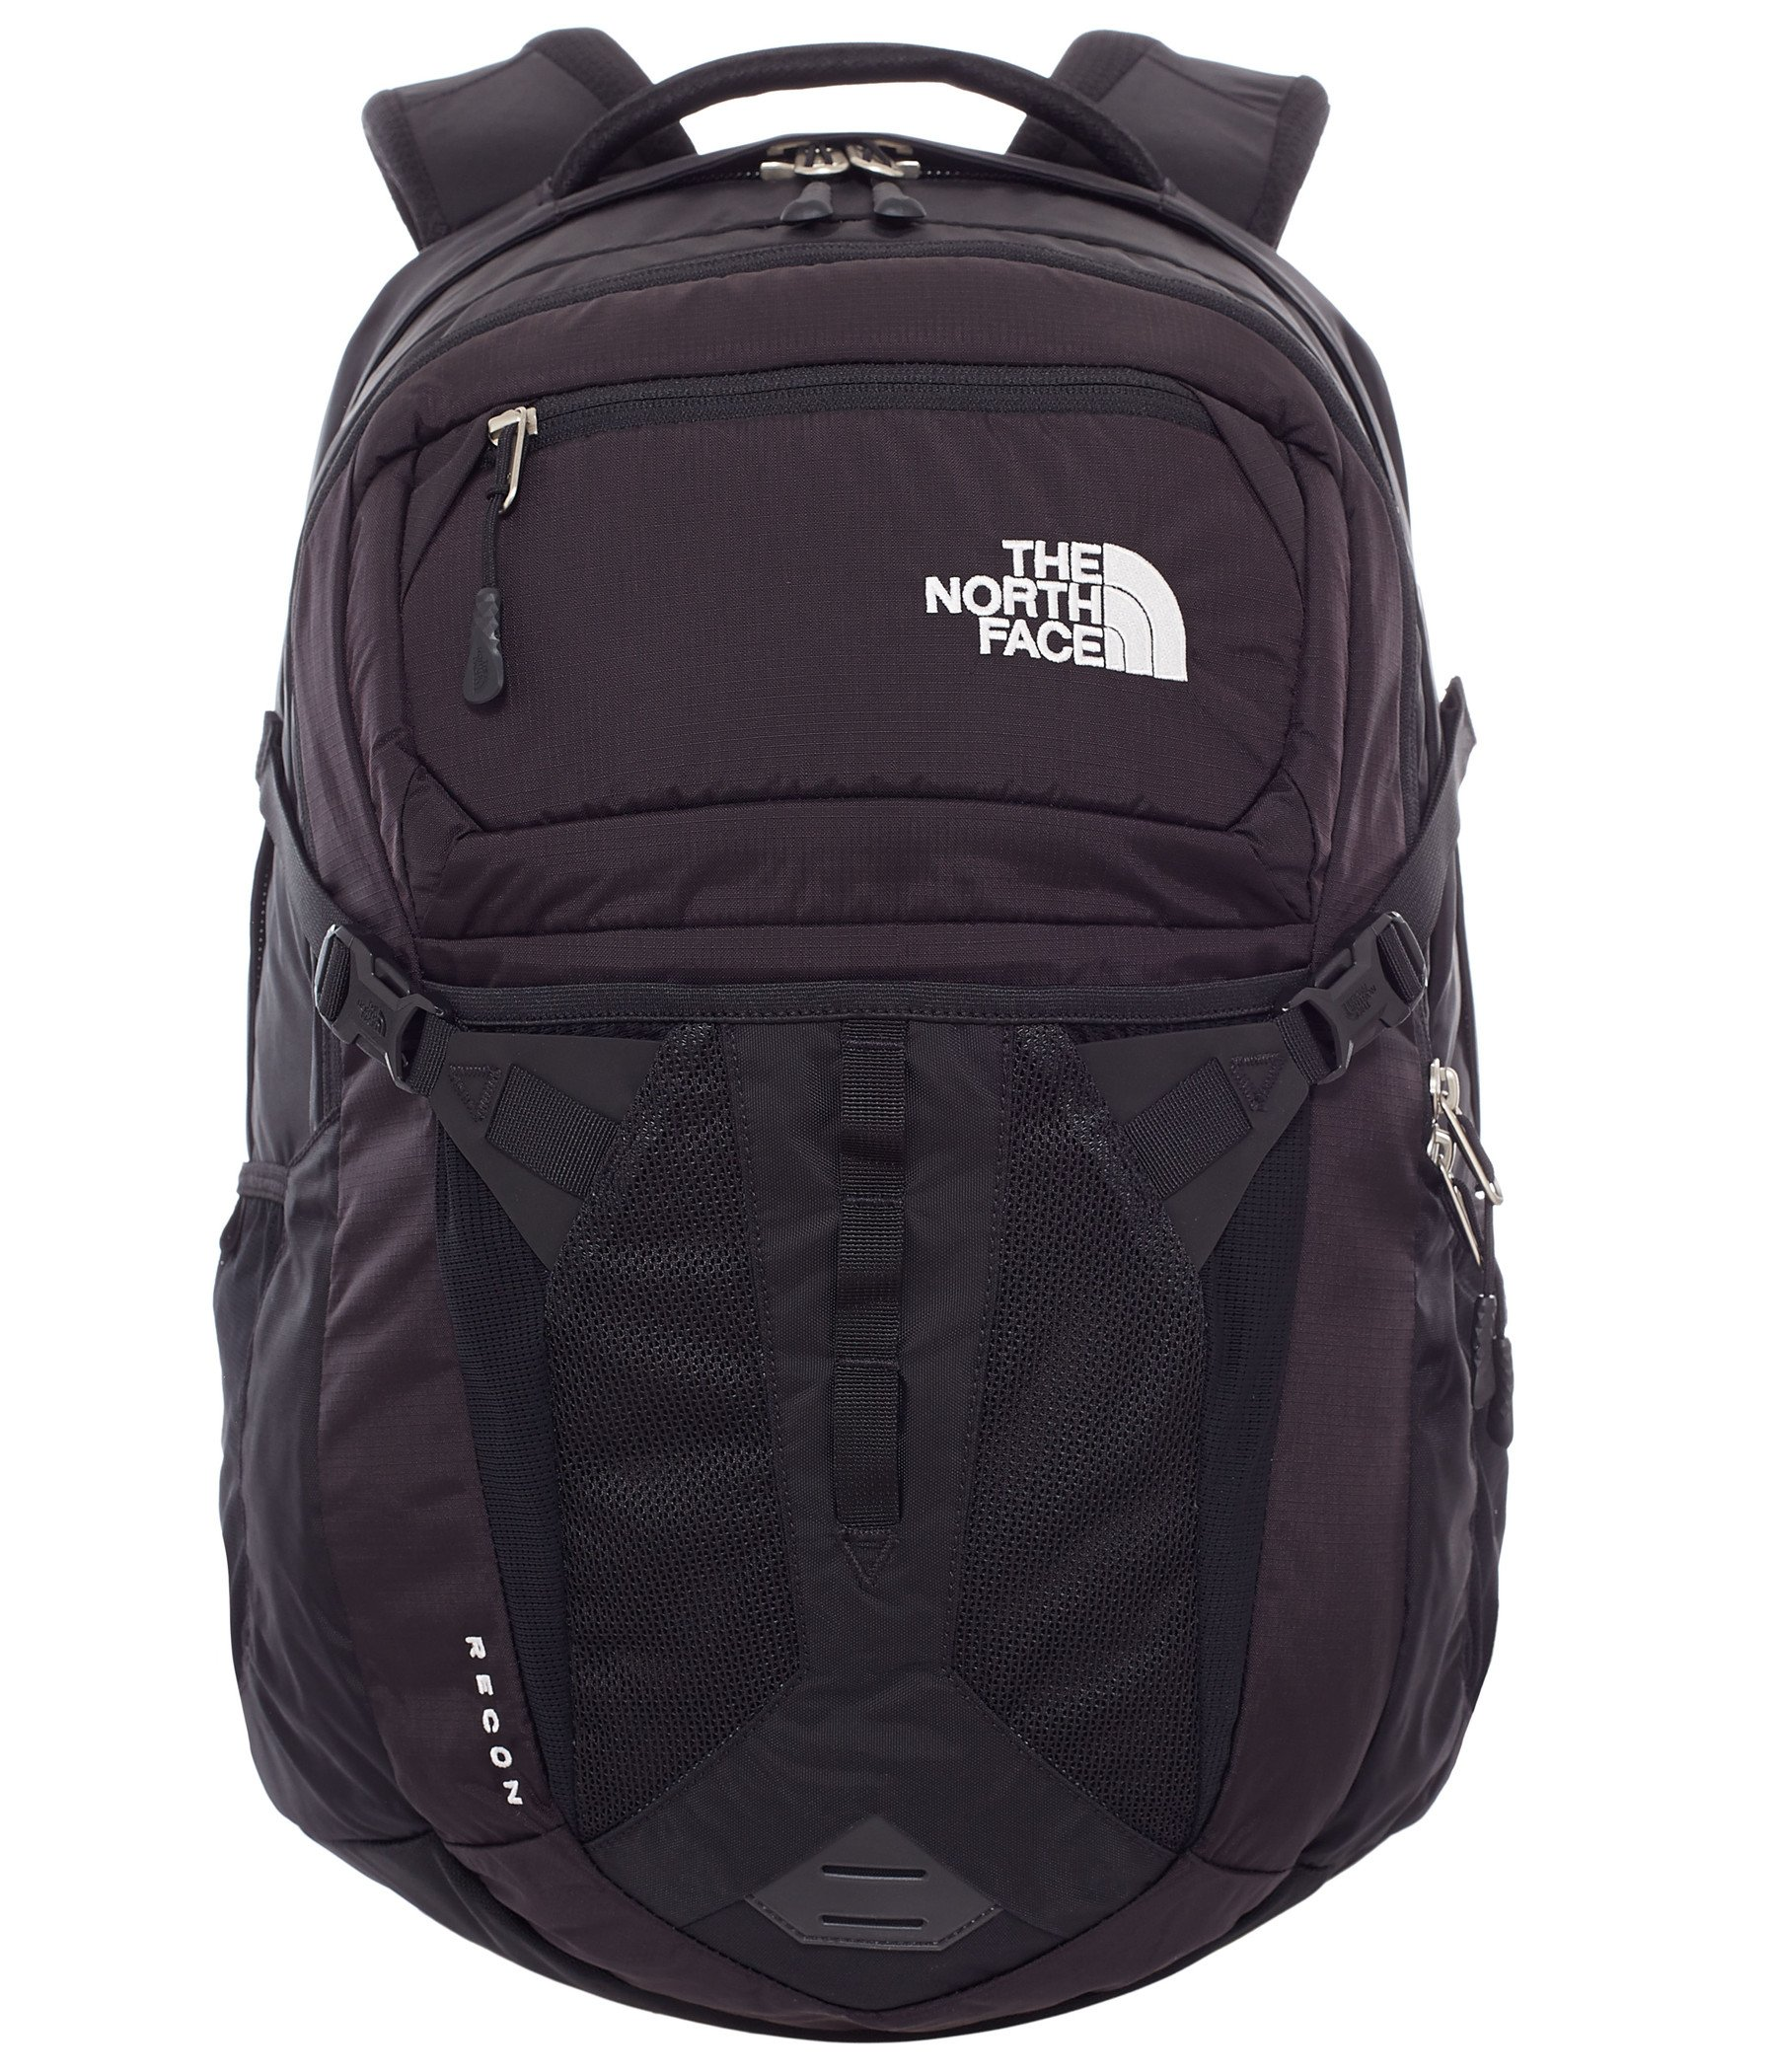 The North Face Recon Laptop Backpack 15 Inch- Sale Colors (TNF Black) by The North Face